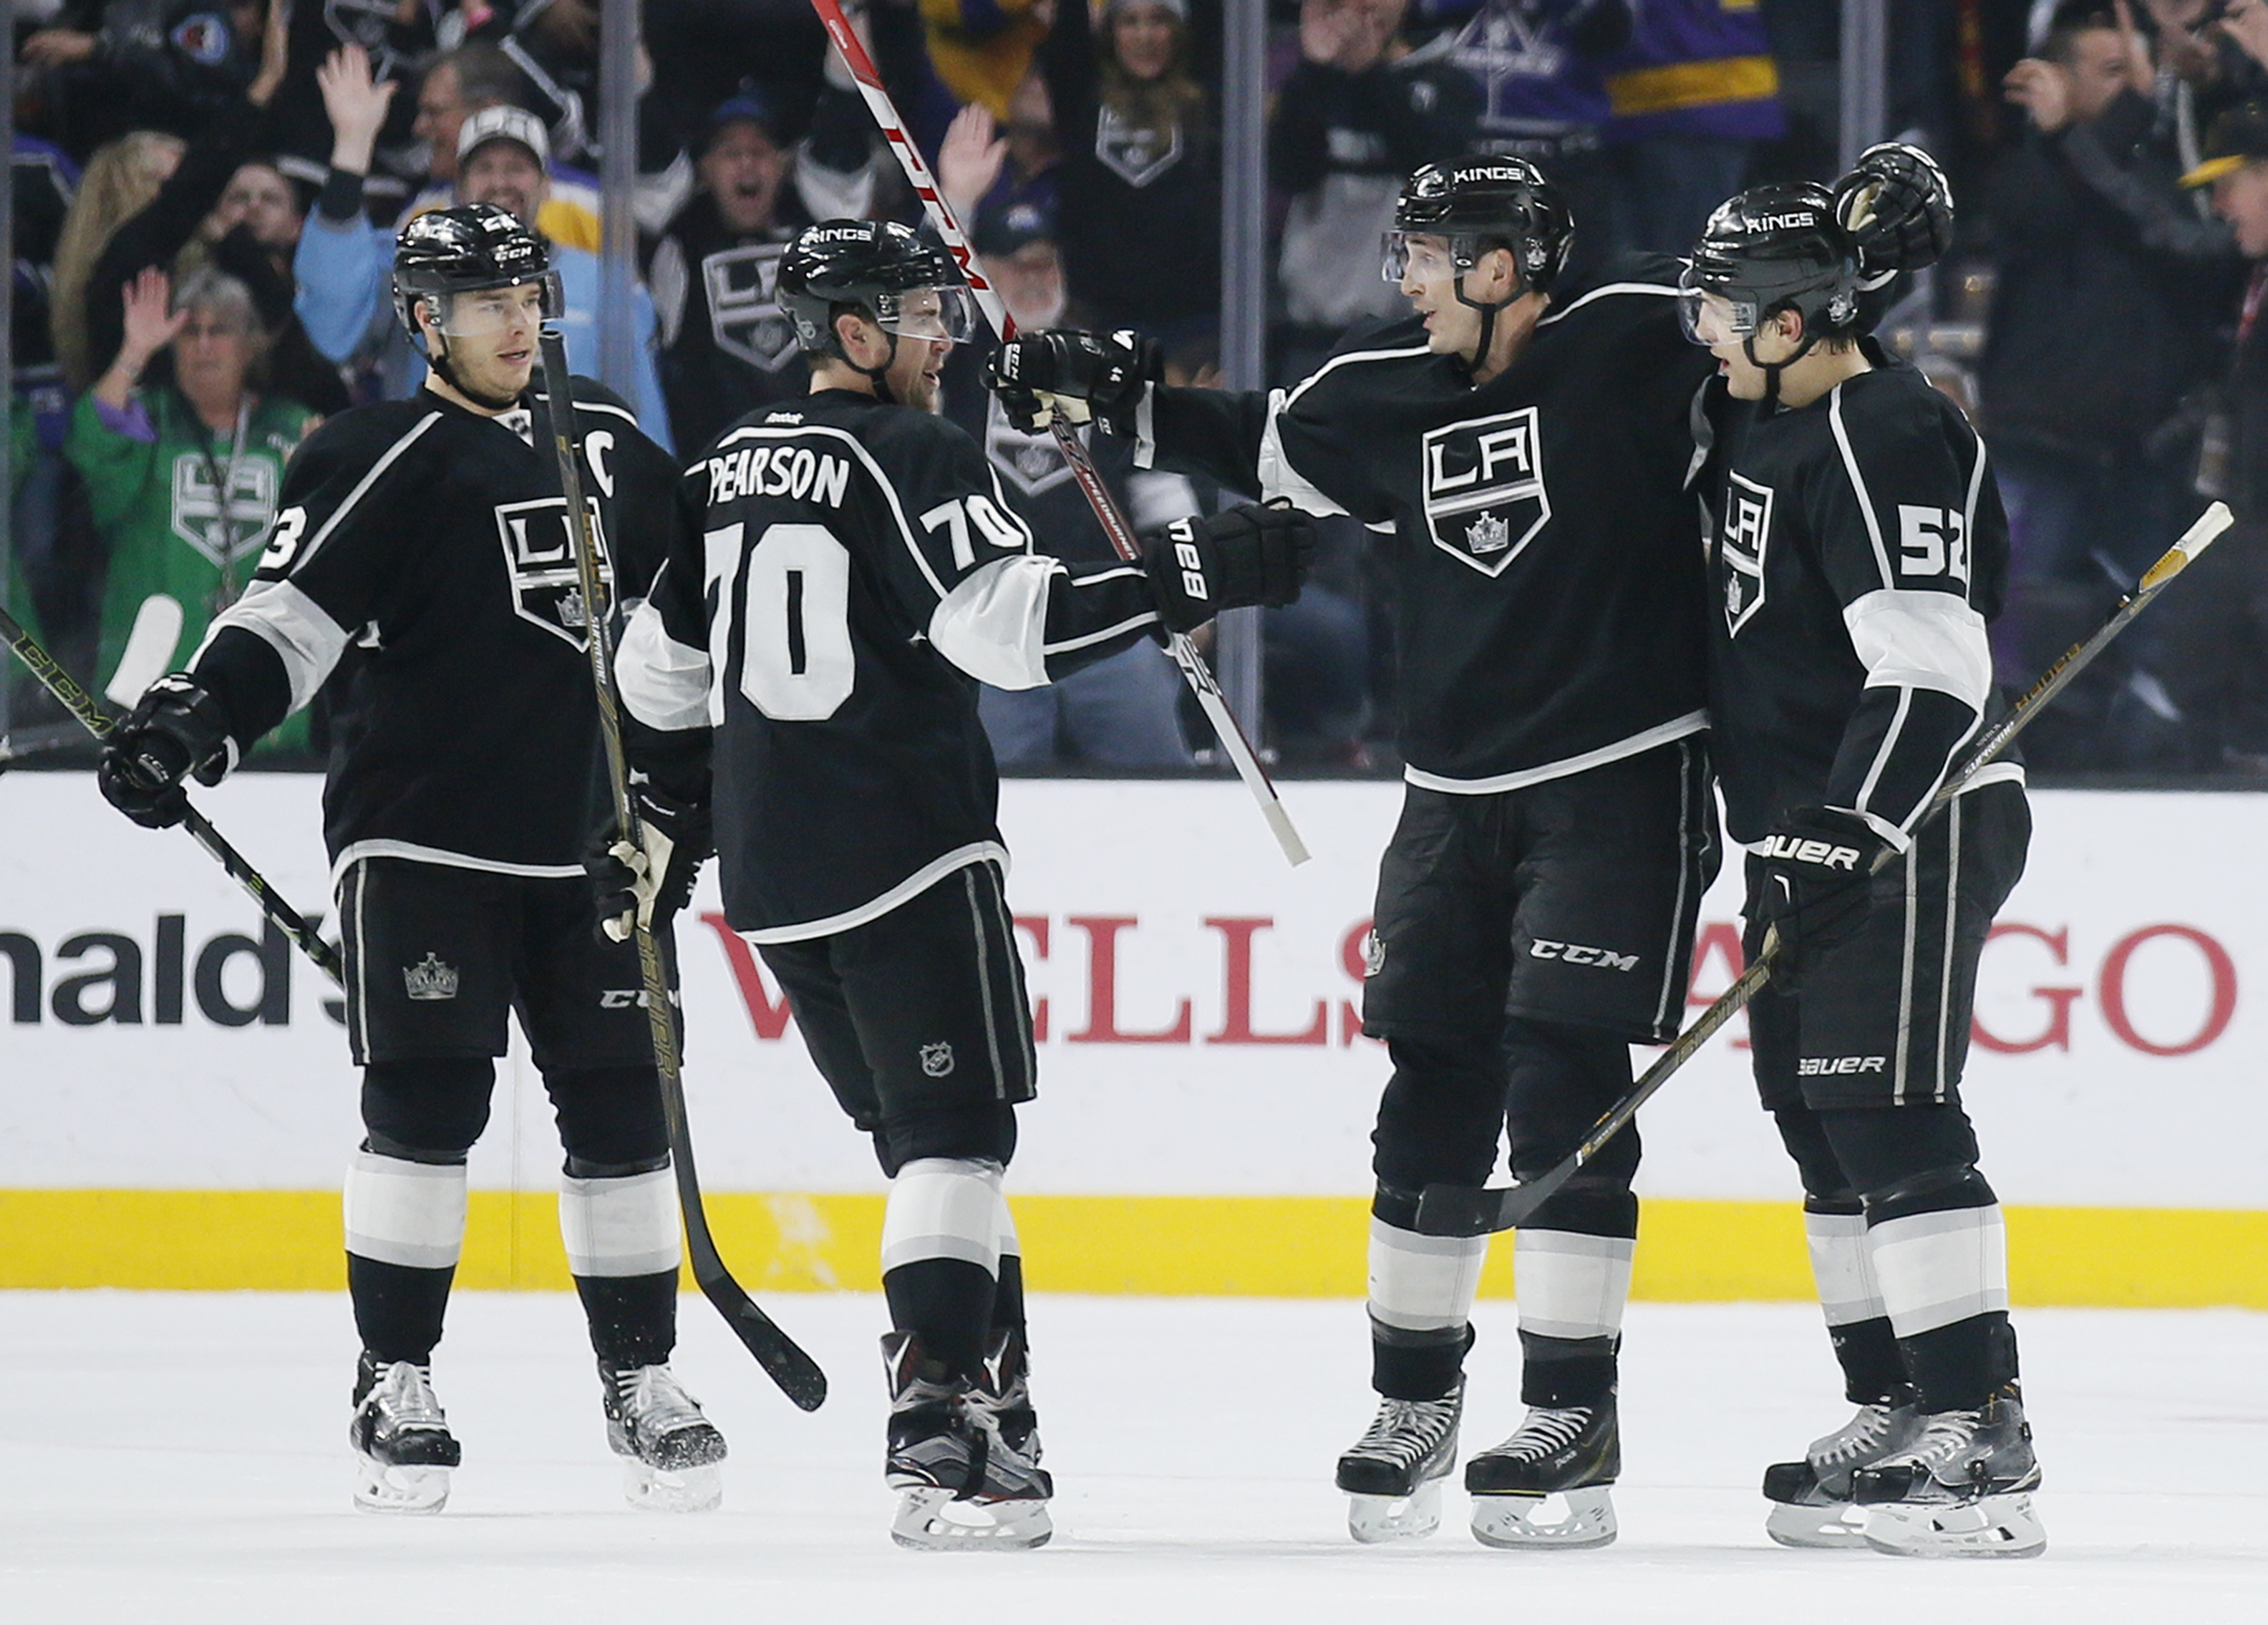 Los Angeles Kings left wing Tanner Pearson, second left, celebrates his goal with teammates, from left to right, Dustin Brown, Vincent Lecavalier, and Luke Schenn against the Boston Bruins during the first period of an NHL hockey game, Saturday, March 19,